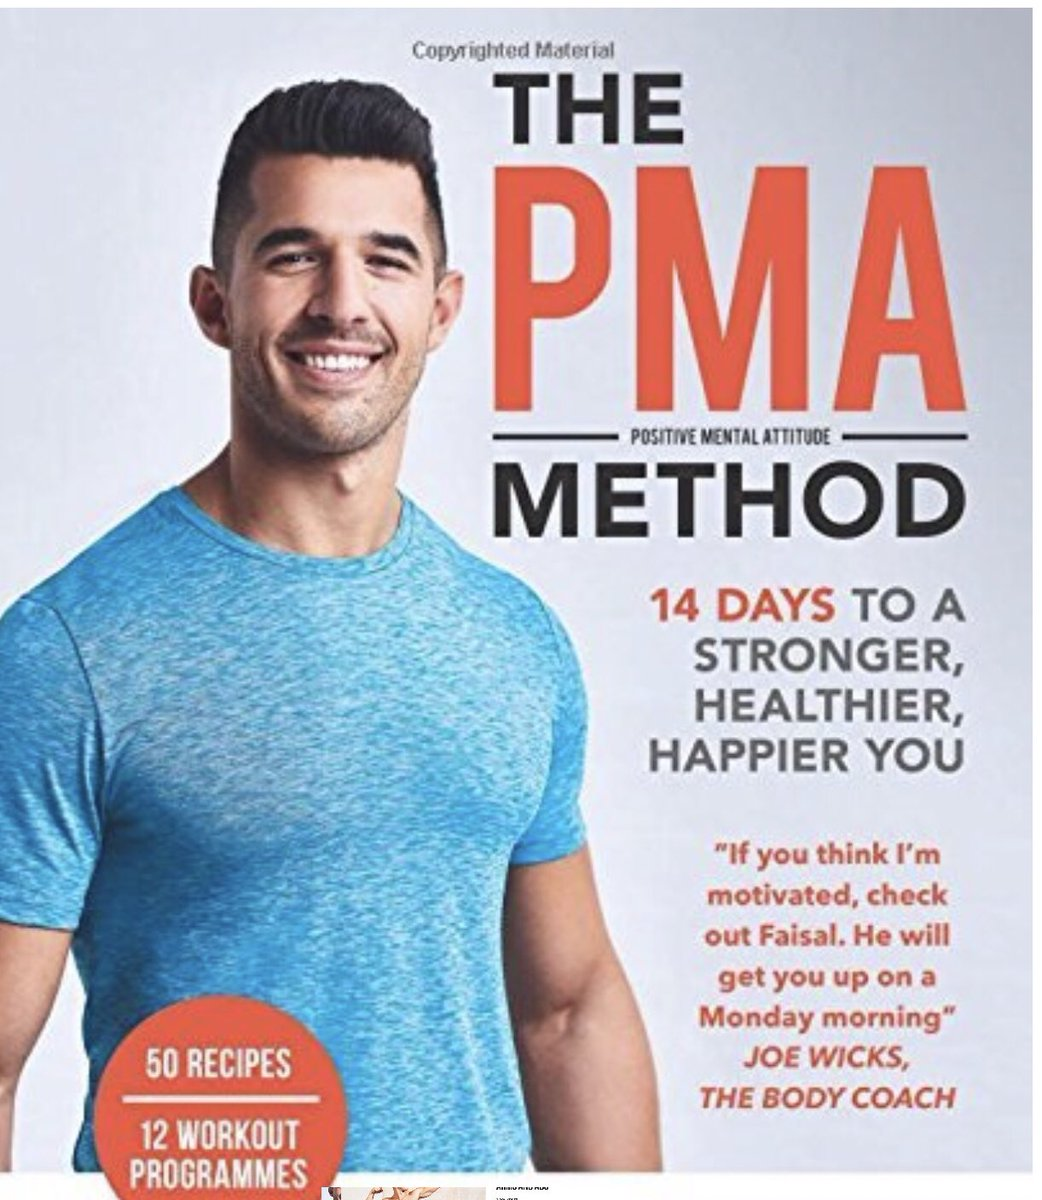 #thepmamethod is out on 3rd May! Pre-order now  https://t.co/r4AeSLGhSD https://t.co/fCu8aF0xIX